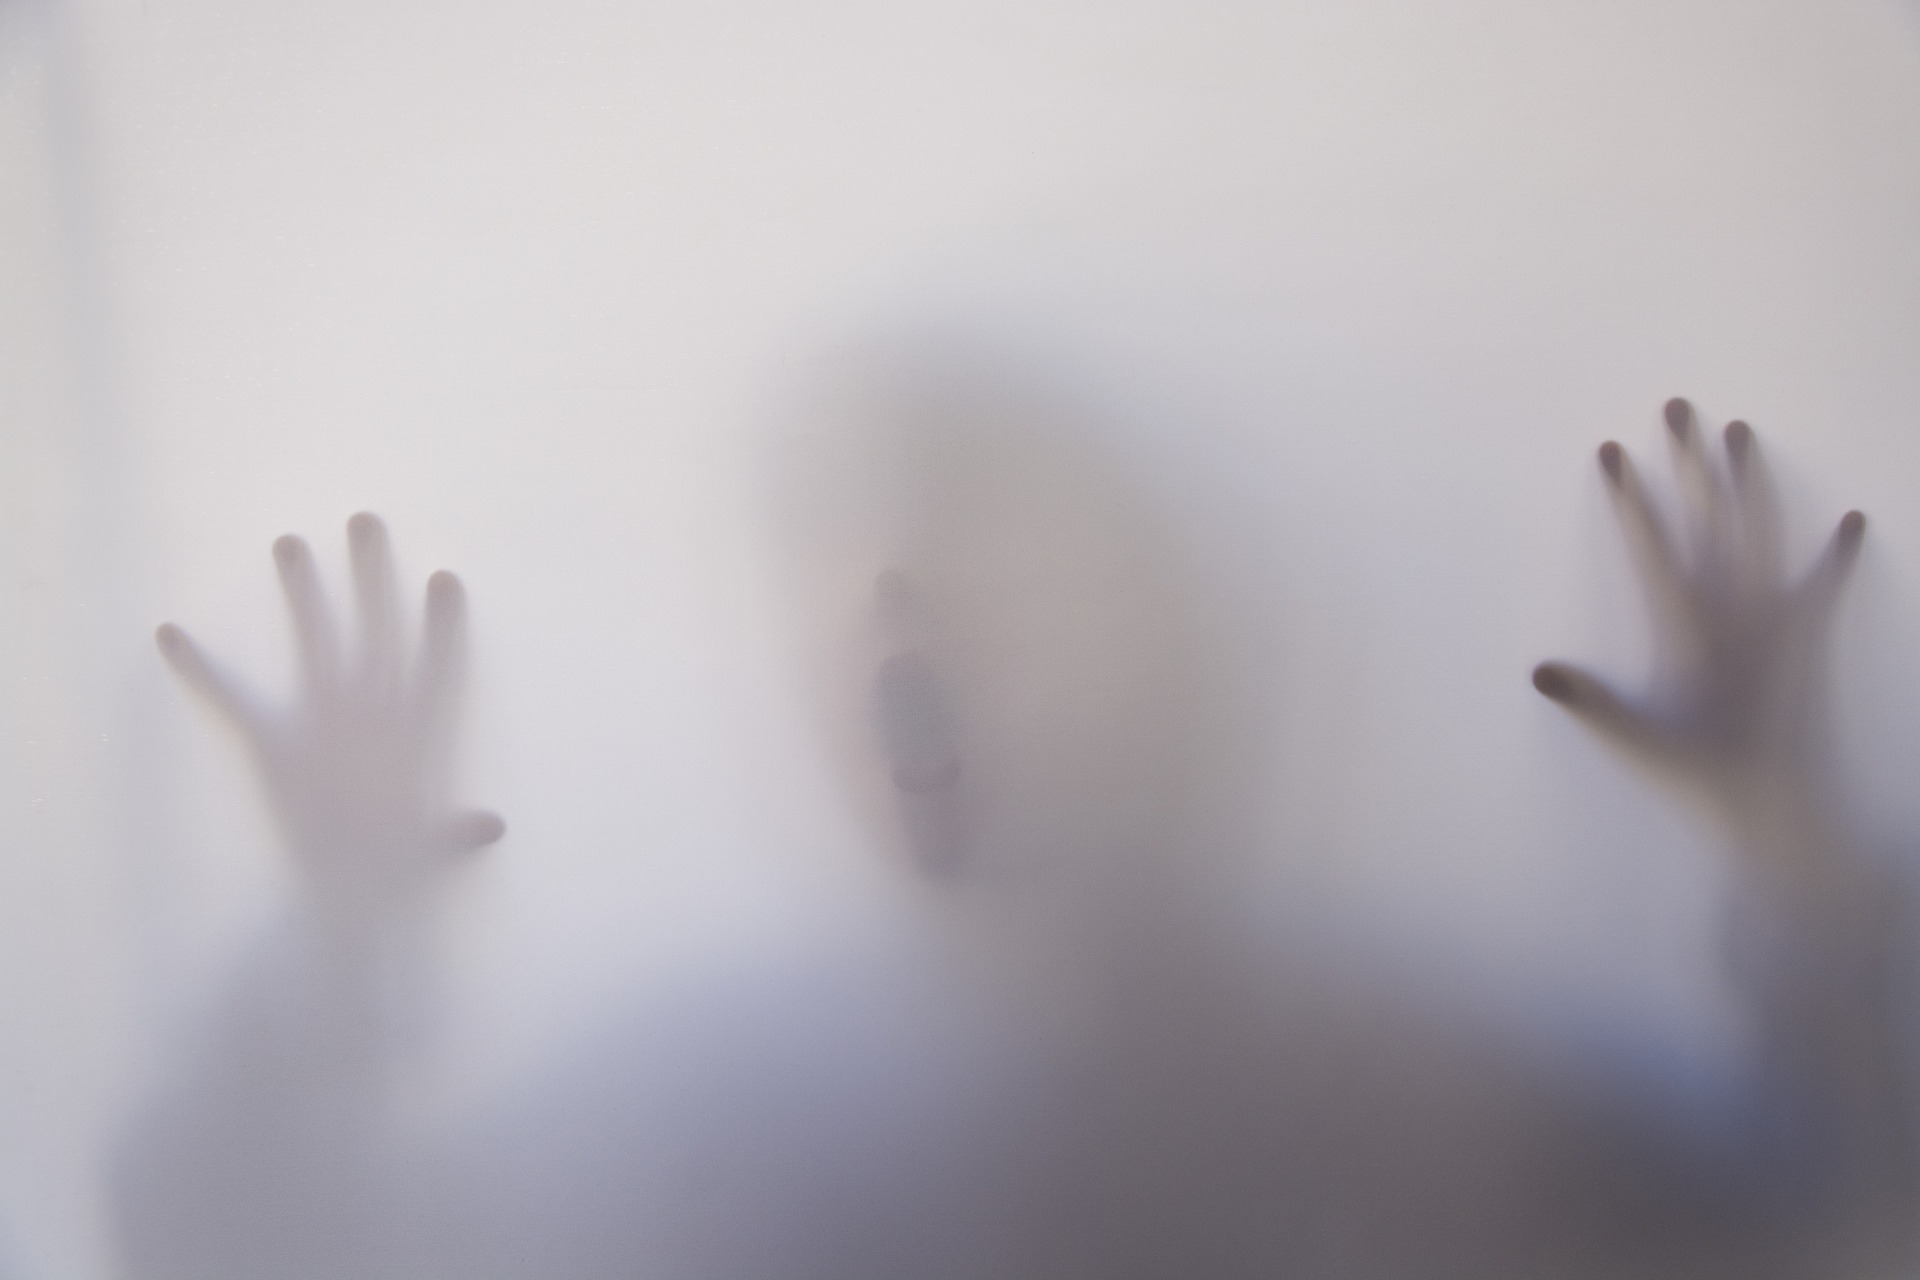 A milky glass with the blurry figure of a child behind it. Both hands are resting against the glass, their face is close to it aswell, their mouth is open as if struggling for air.